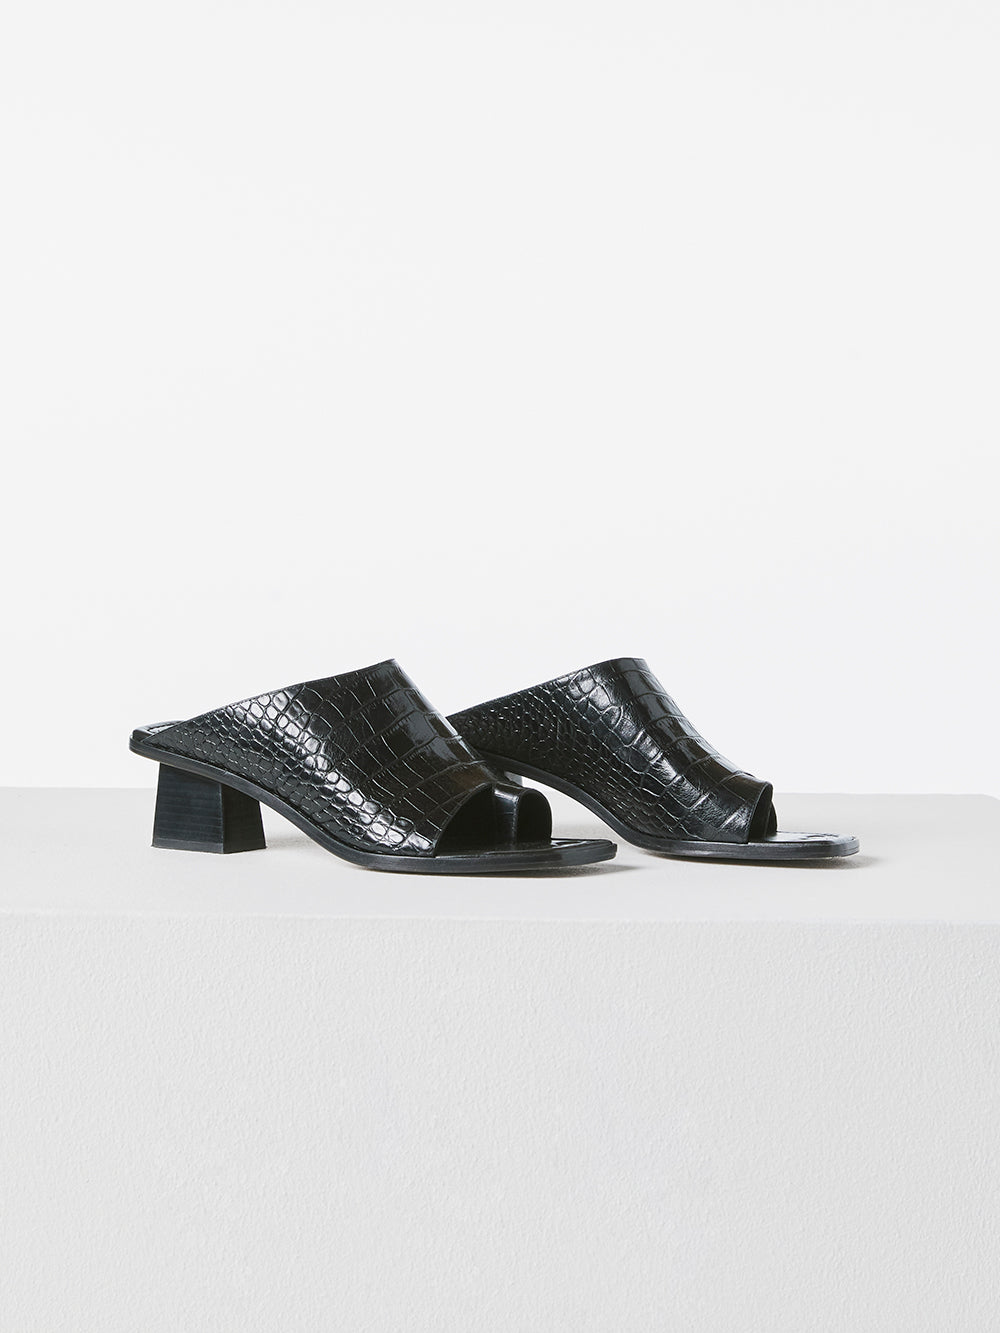 Le Beachwood Slide -- Noir Croco